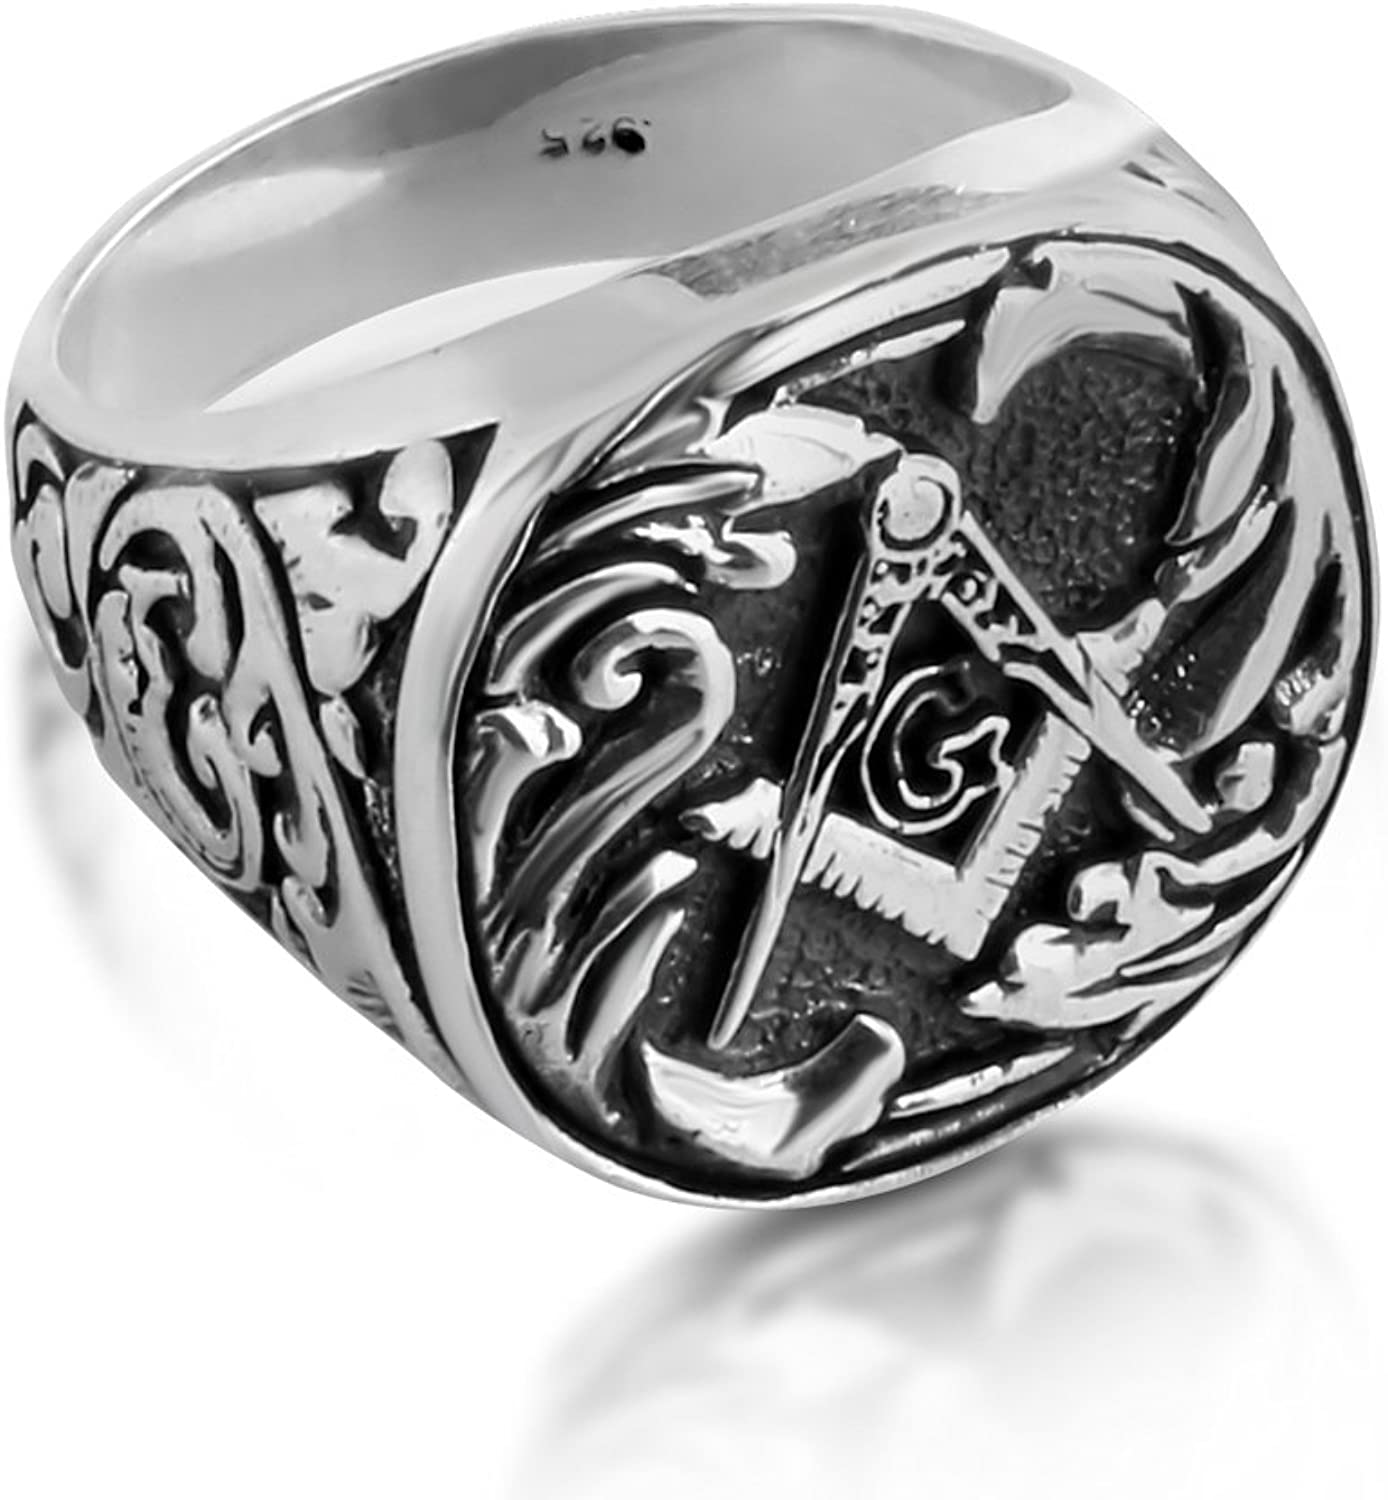 Azaggi Sterling Silver Handcrafted Fathers Day Gift Square and Compass Freemason Mens Ring